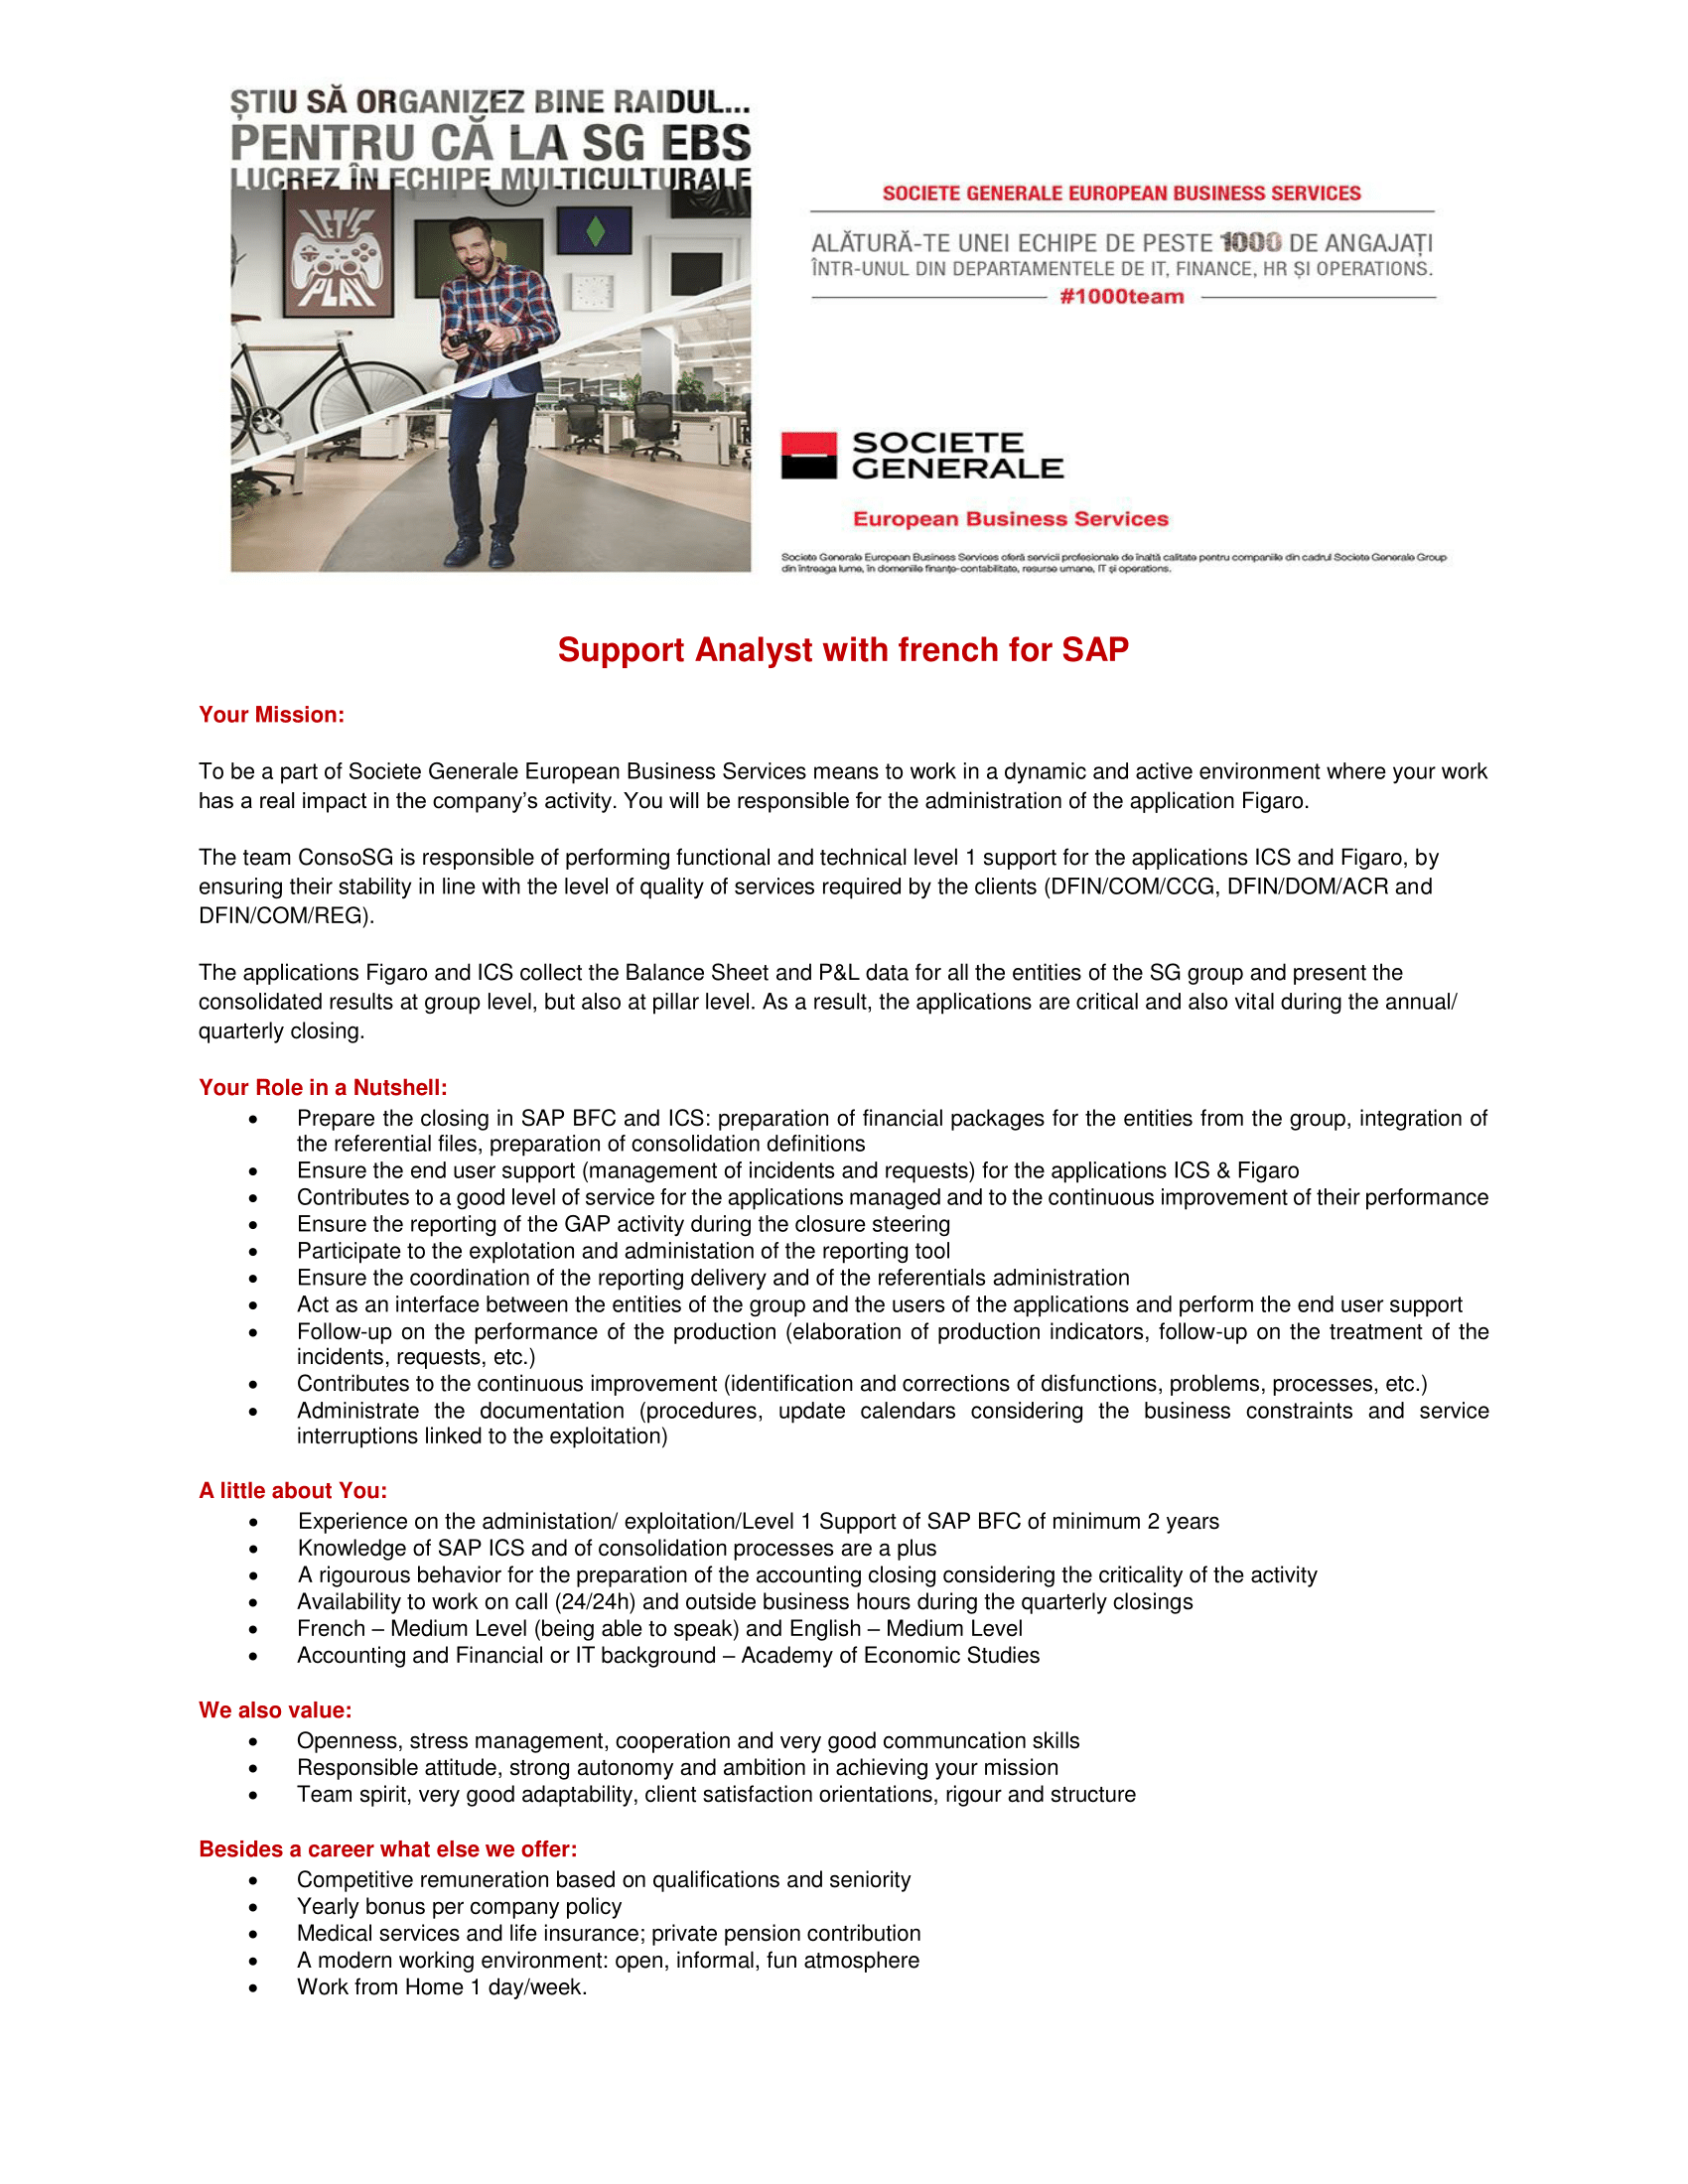 Support Analyst with French for SAP-1